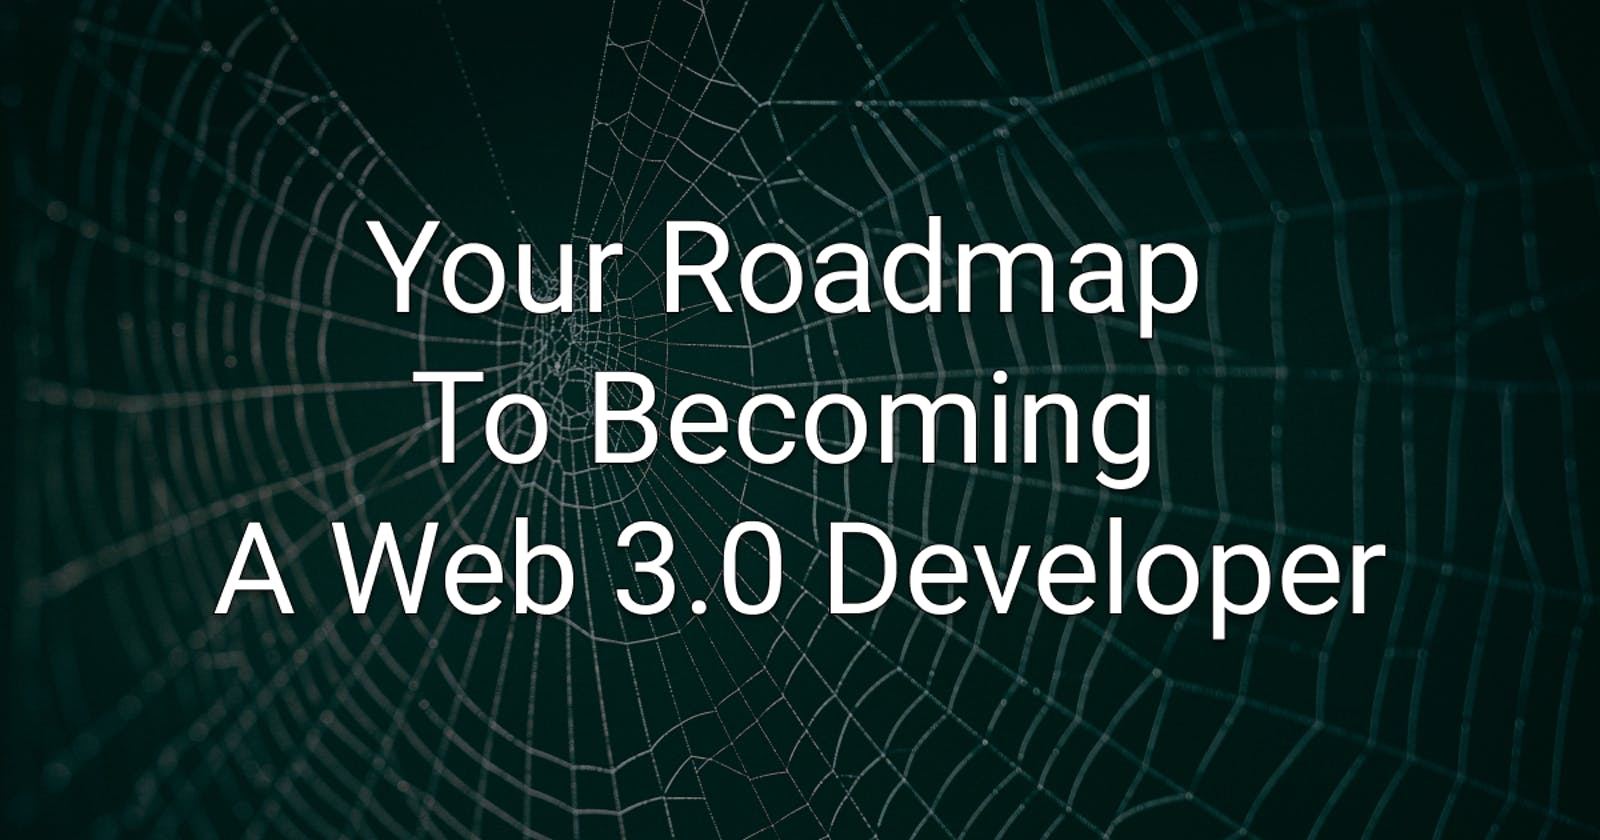 Your Roadmap To Becoming A Web 3.0 Developer